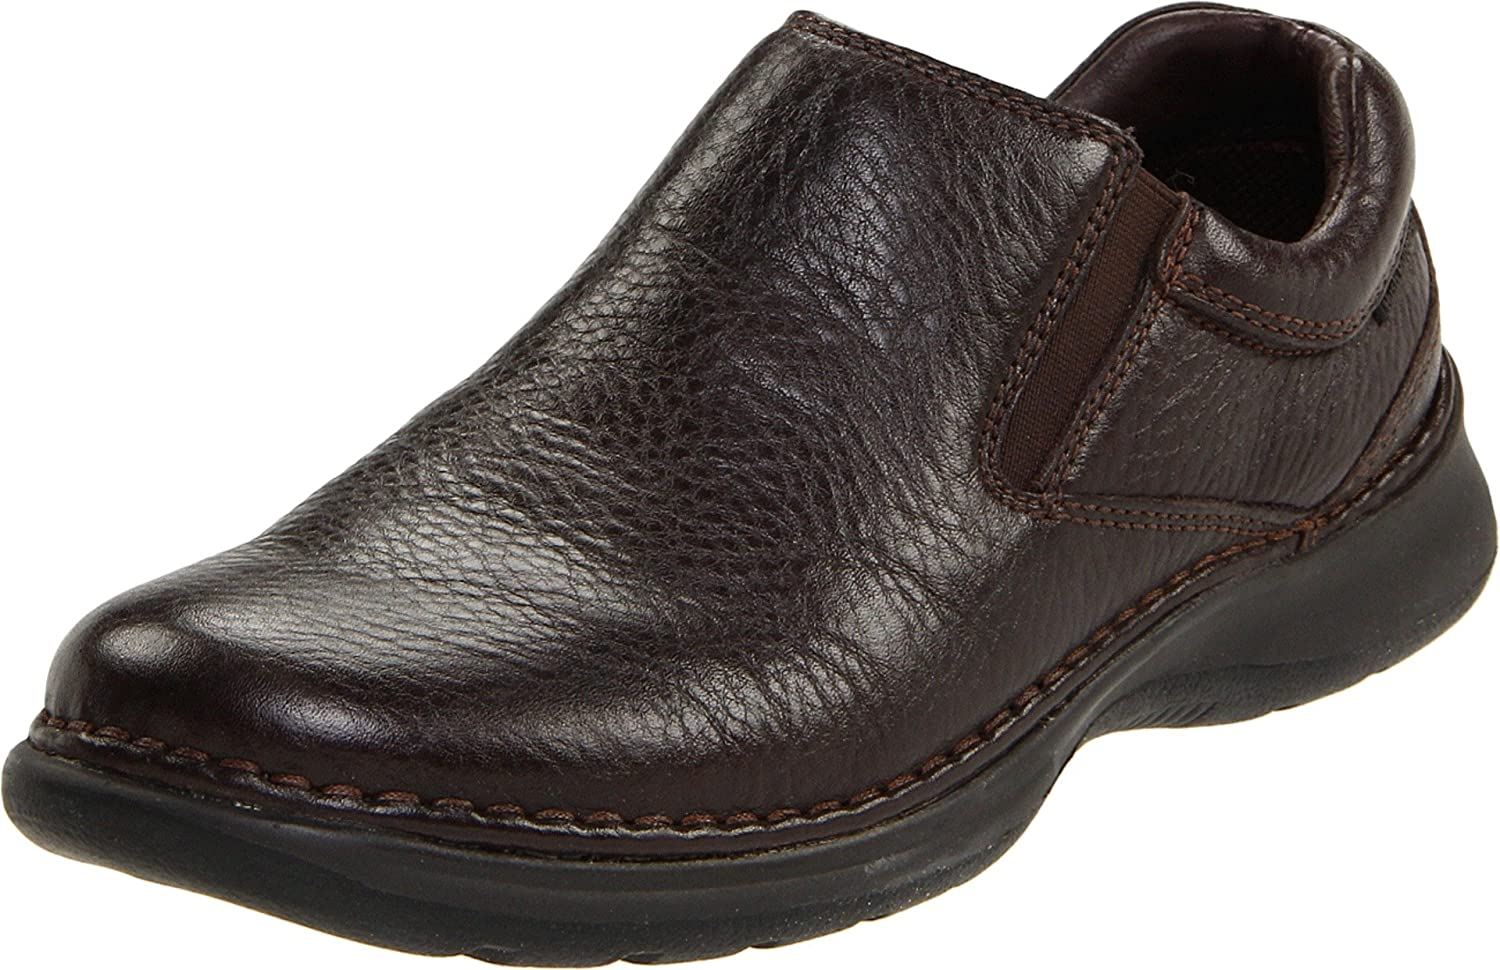 Hush Puppies Men's Lunar II Slip-On Loafer